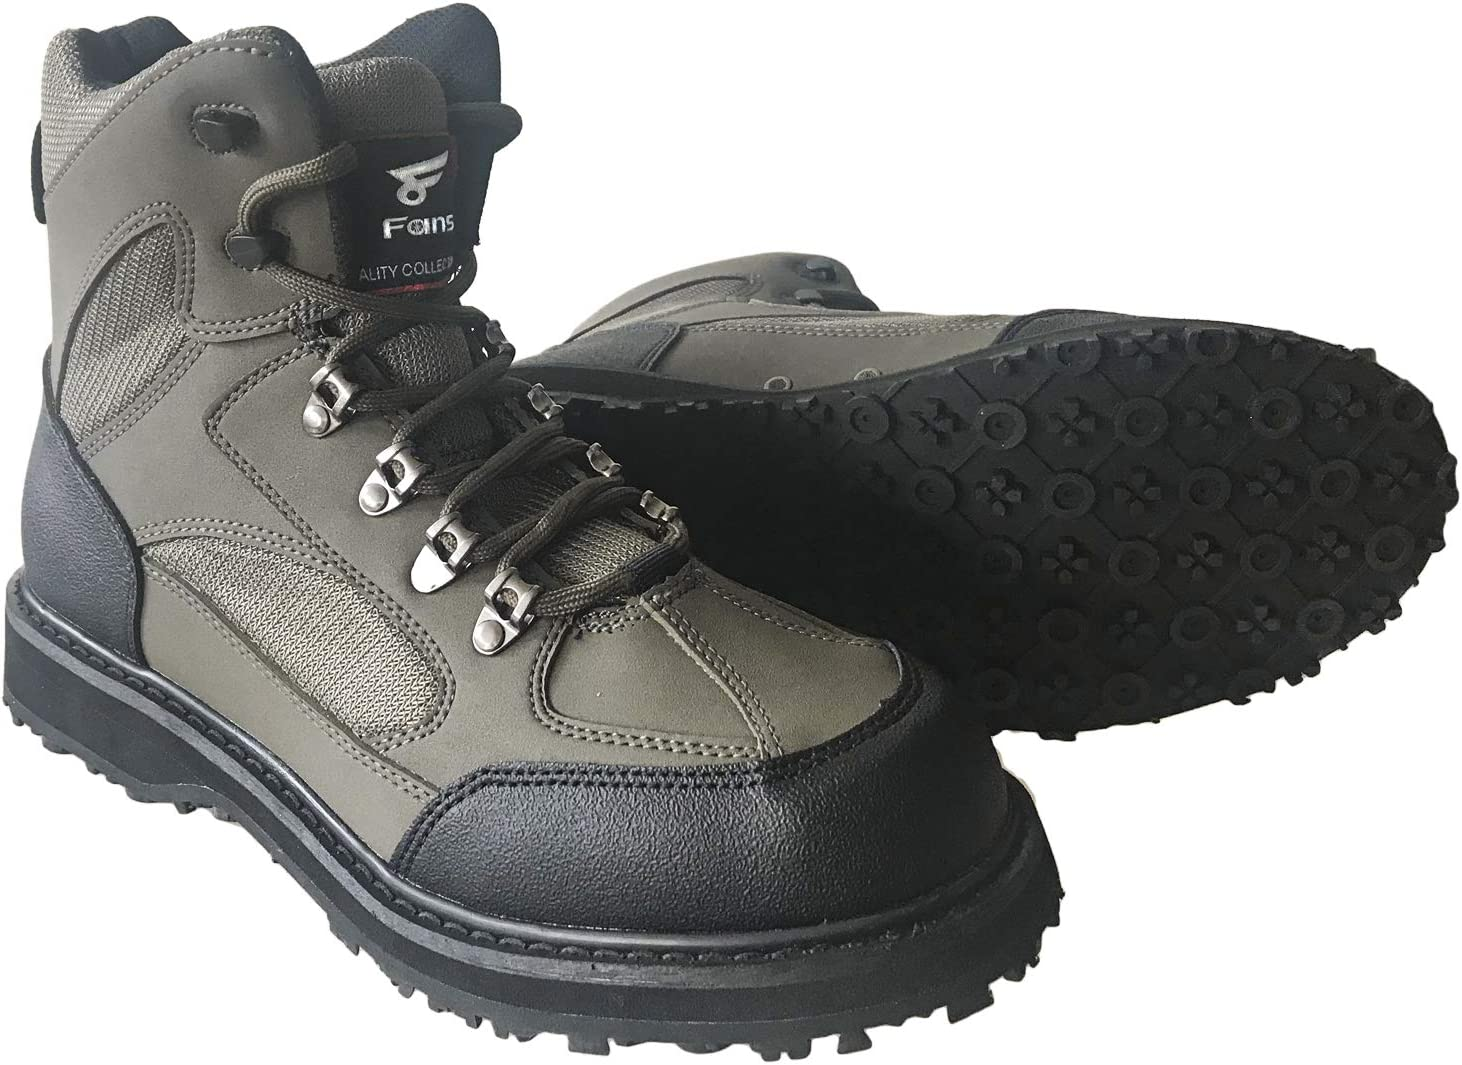 Fans Men's Fly Fishing Wading Boots